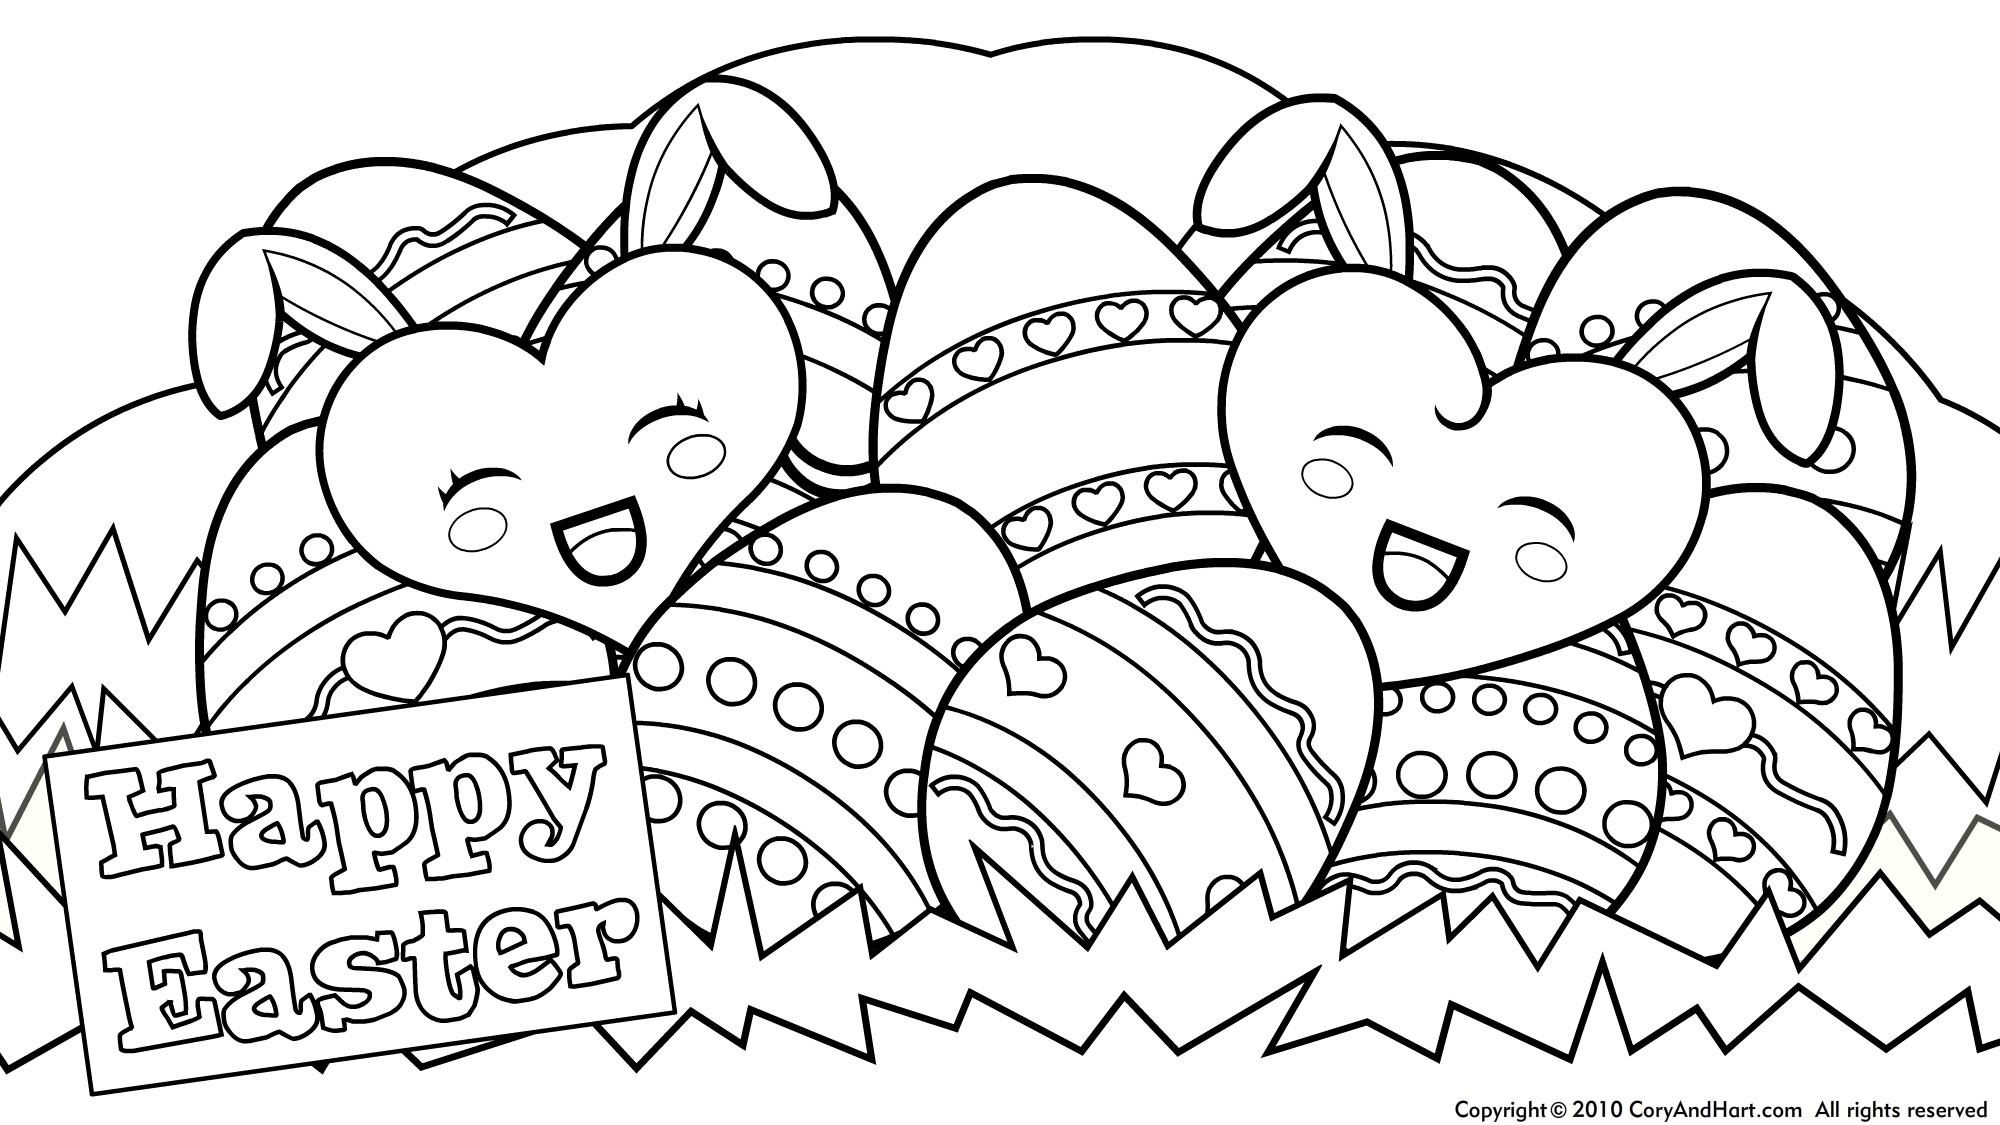 Amazing Of Gallery Of Printable Easter Egg Coloring Pages #196 ...